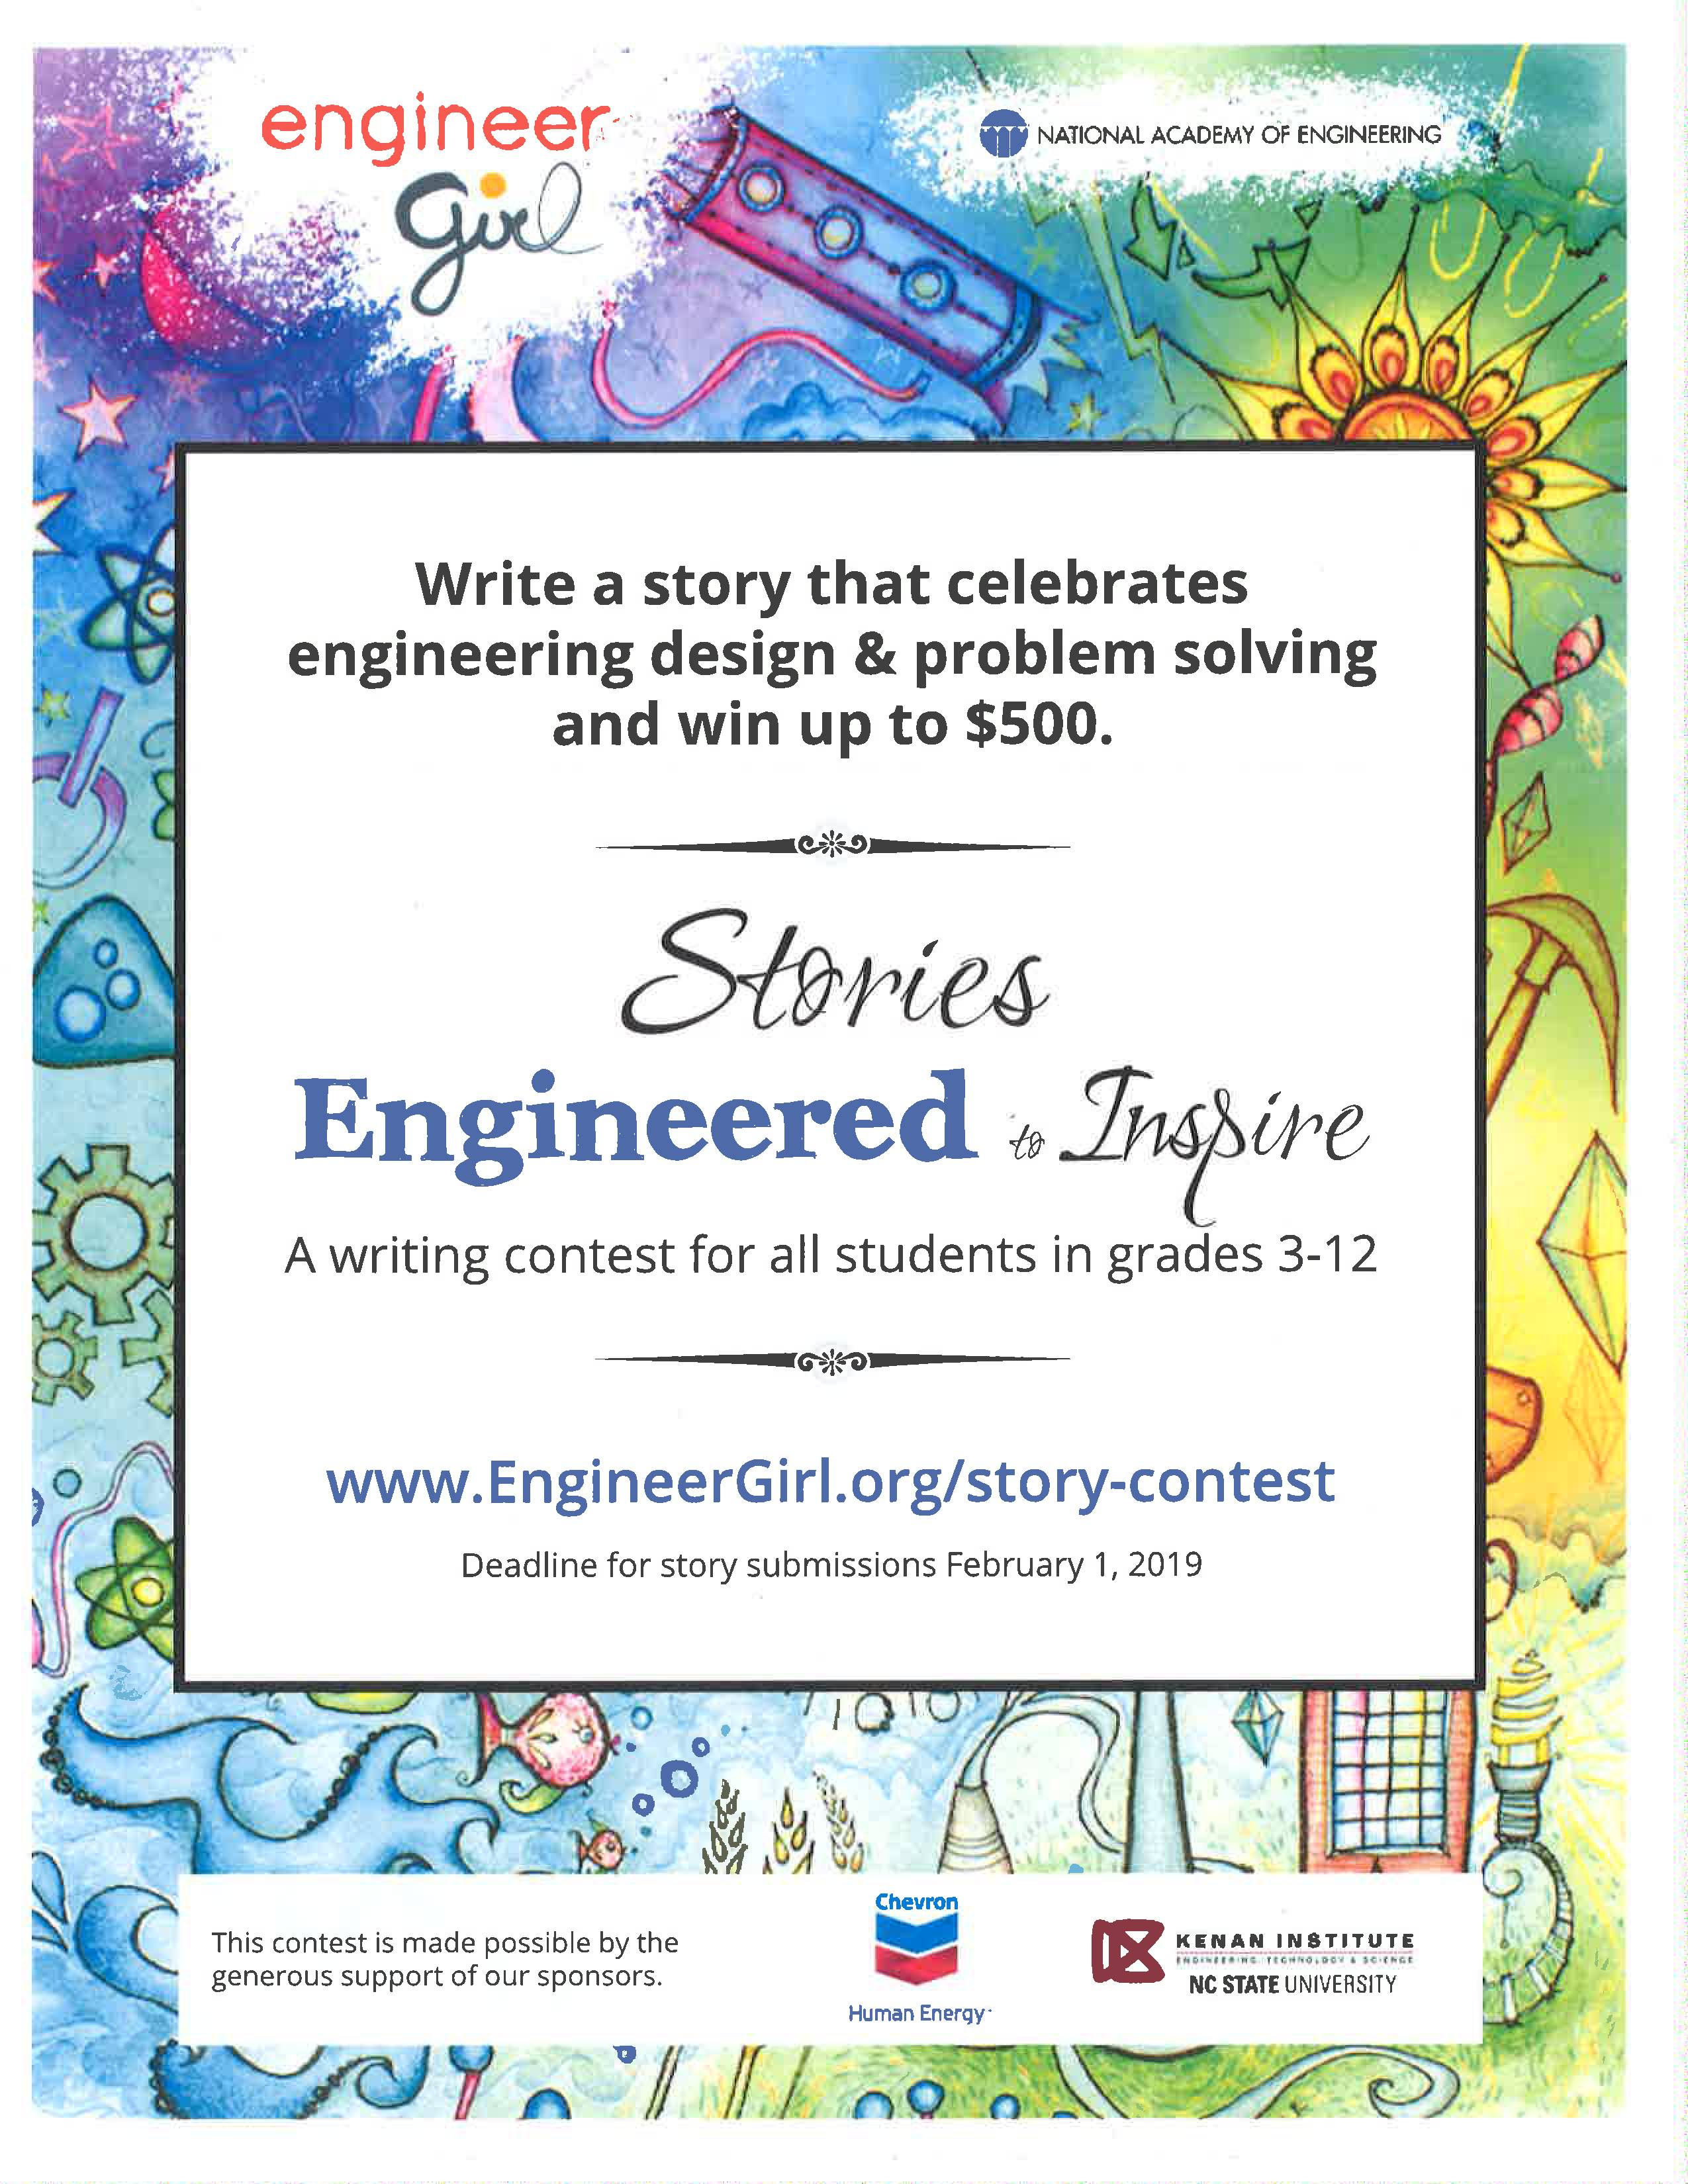 Write a story that celebrates engineering design and problem solving and win up to $500. A writing contest for all students in grades 3-12. www.EngineerGirl.com/story-contest  Deadline for story submissions February 1, 2019.